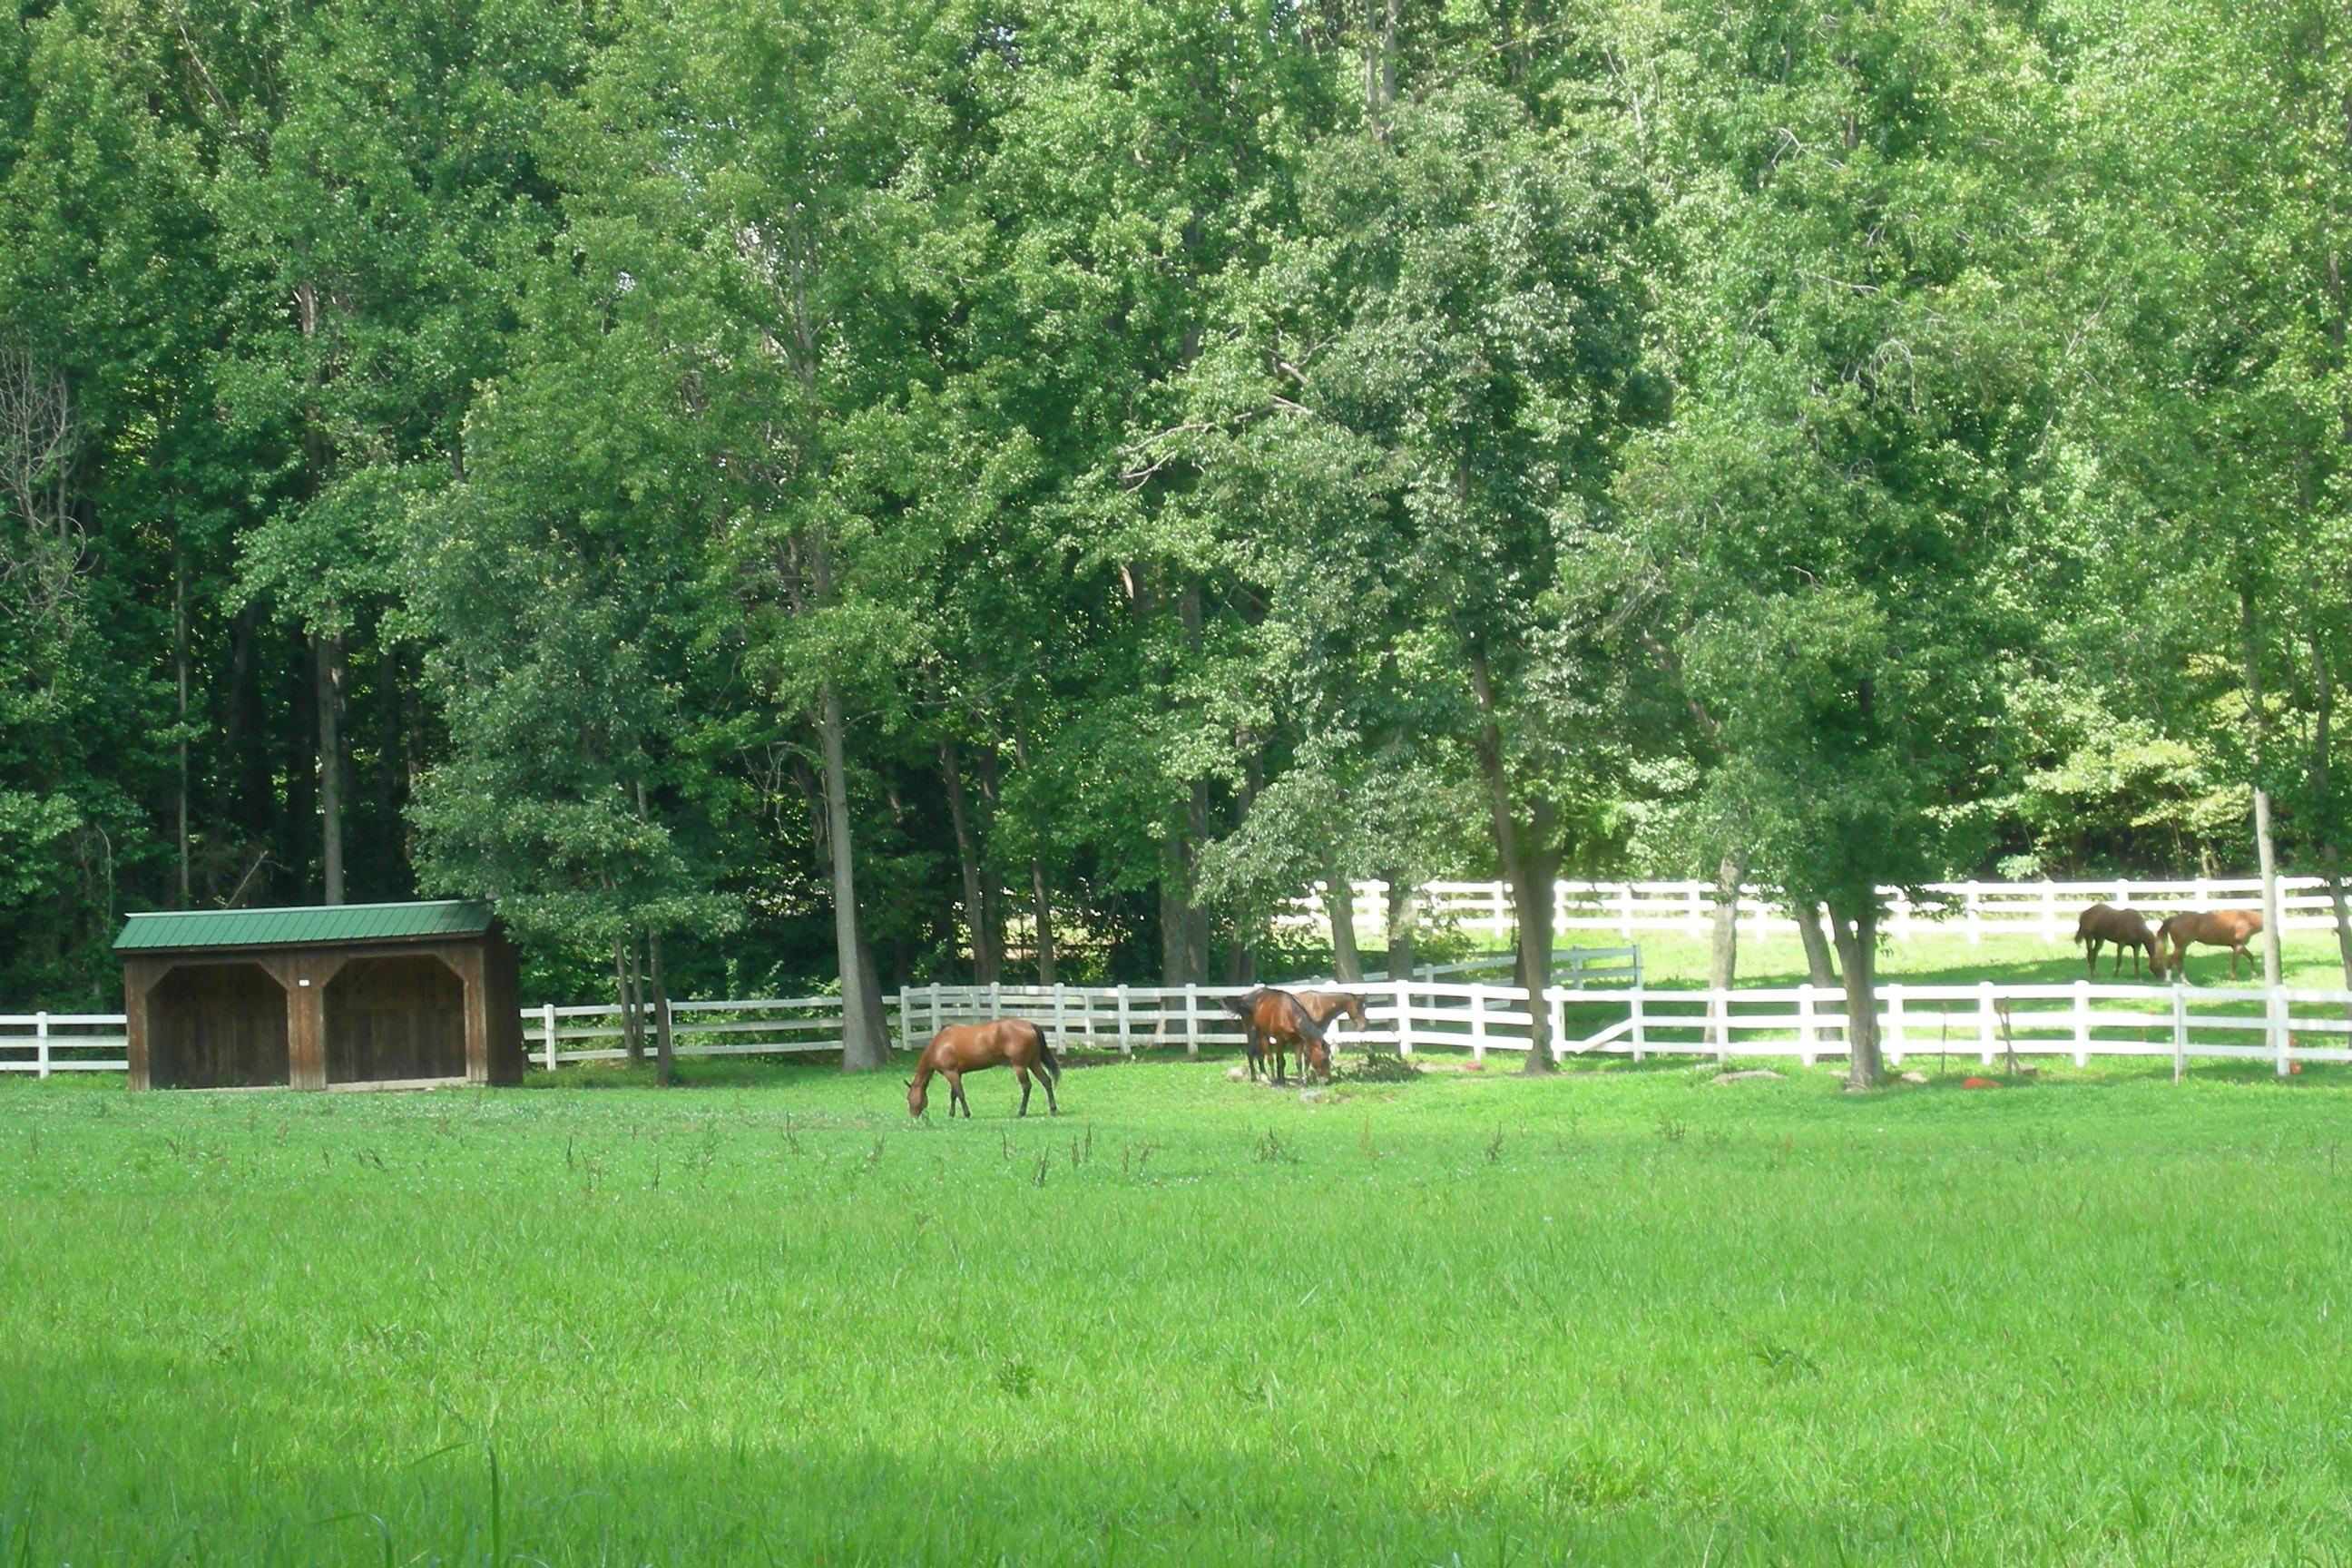 Garrett's Chance is a horse friendly community located in a country setting with a convenient location to employment and shopping.  Come live your equestrian lifestyle, at Garrett's Chance, and bring your horses!  Gorgeous 3-15 acre sites located just south of Brandywine and just outside of Hughesviille.  Garrett's Chance is a quality new homes community by K&P Builders of Maryland, Brokered by Marie Lally, O'Brien Realty of Southern Maryland